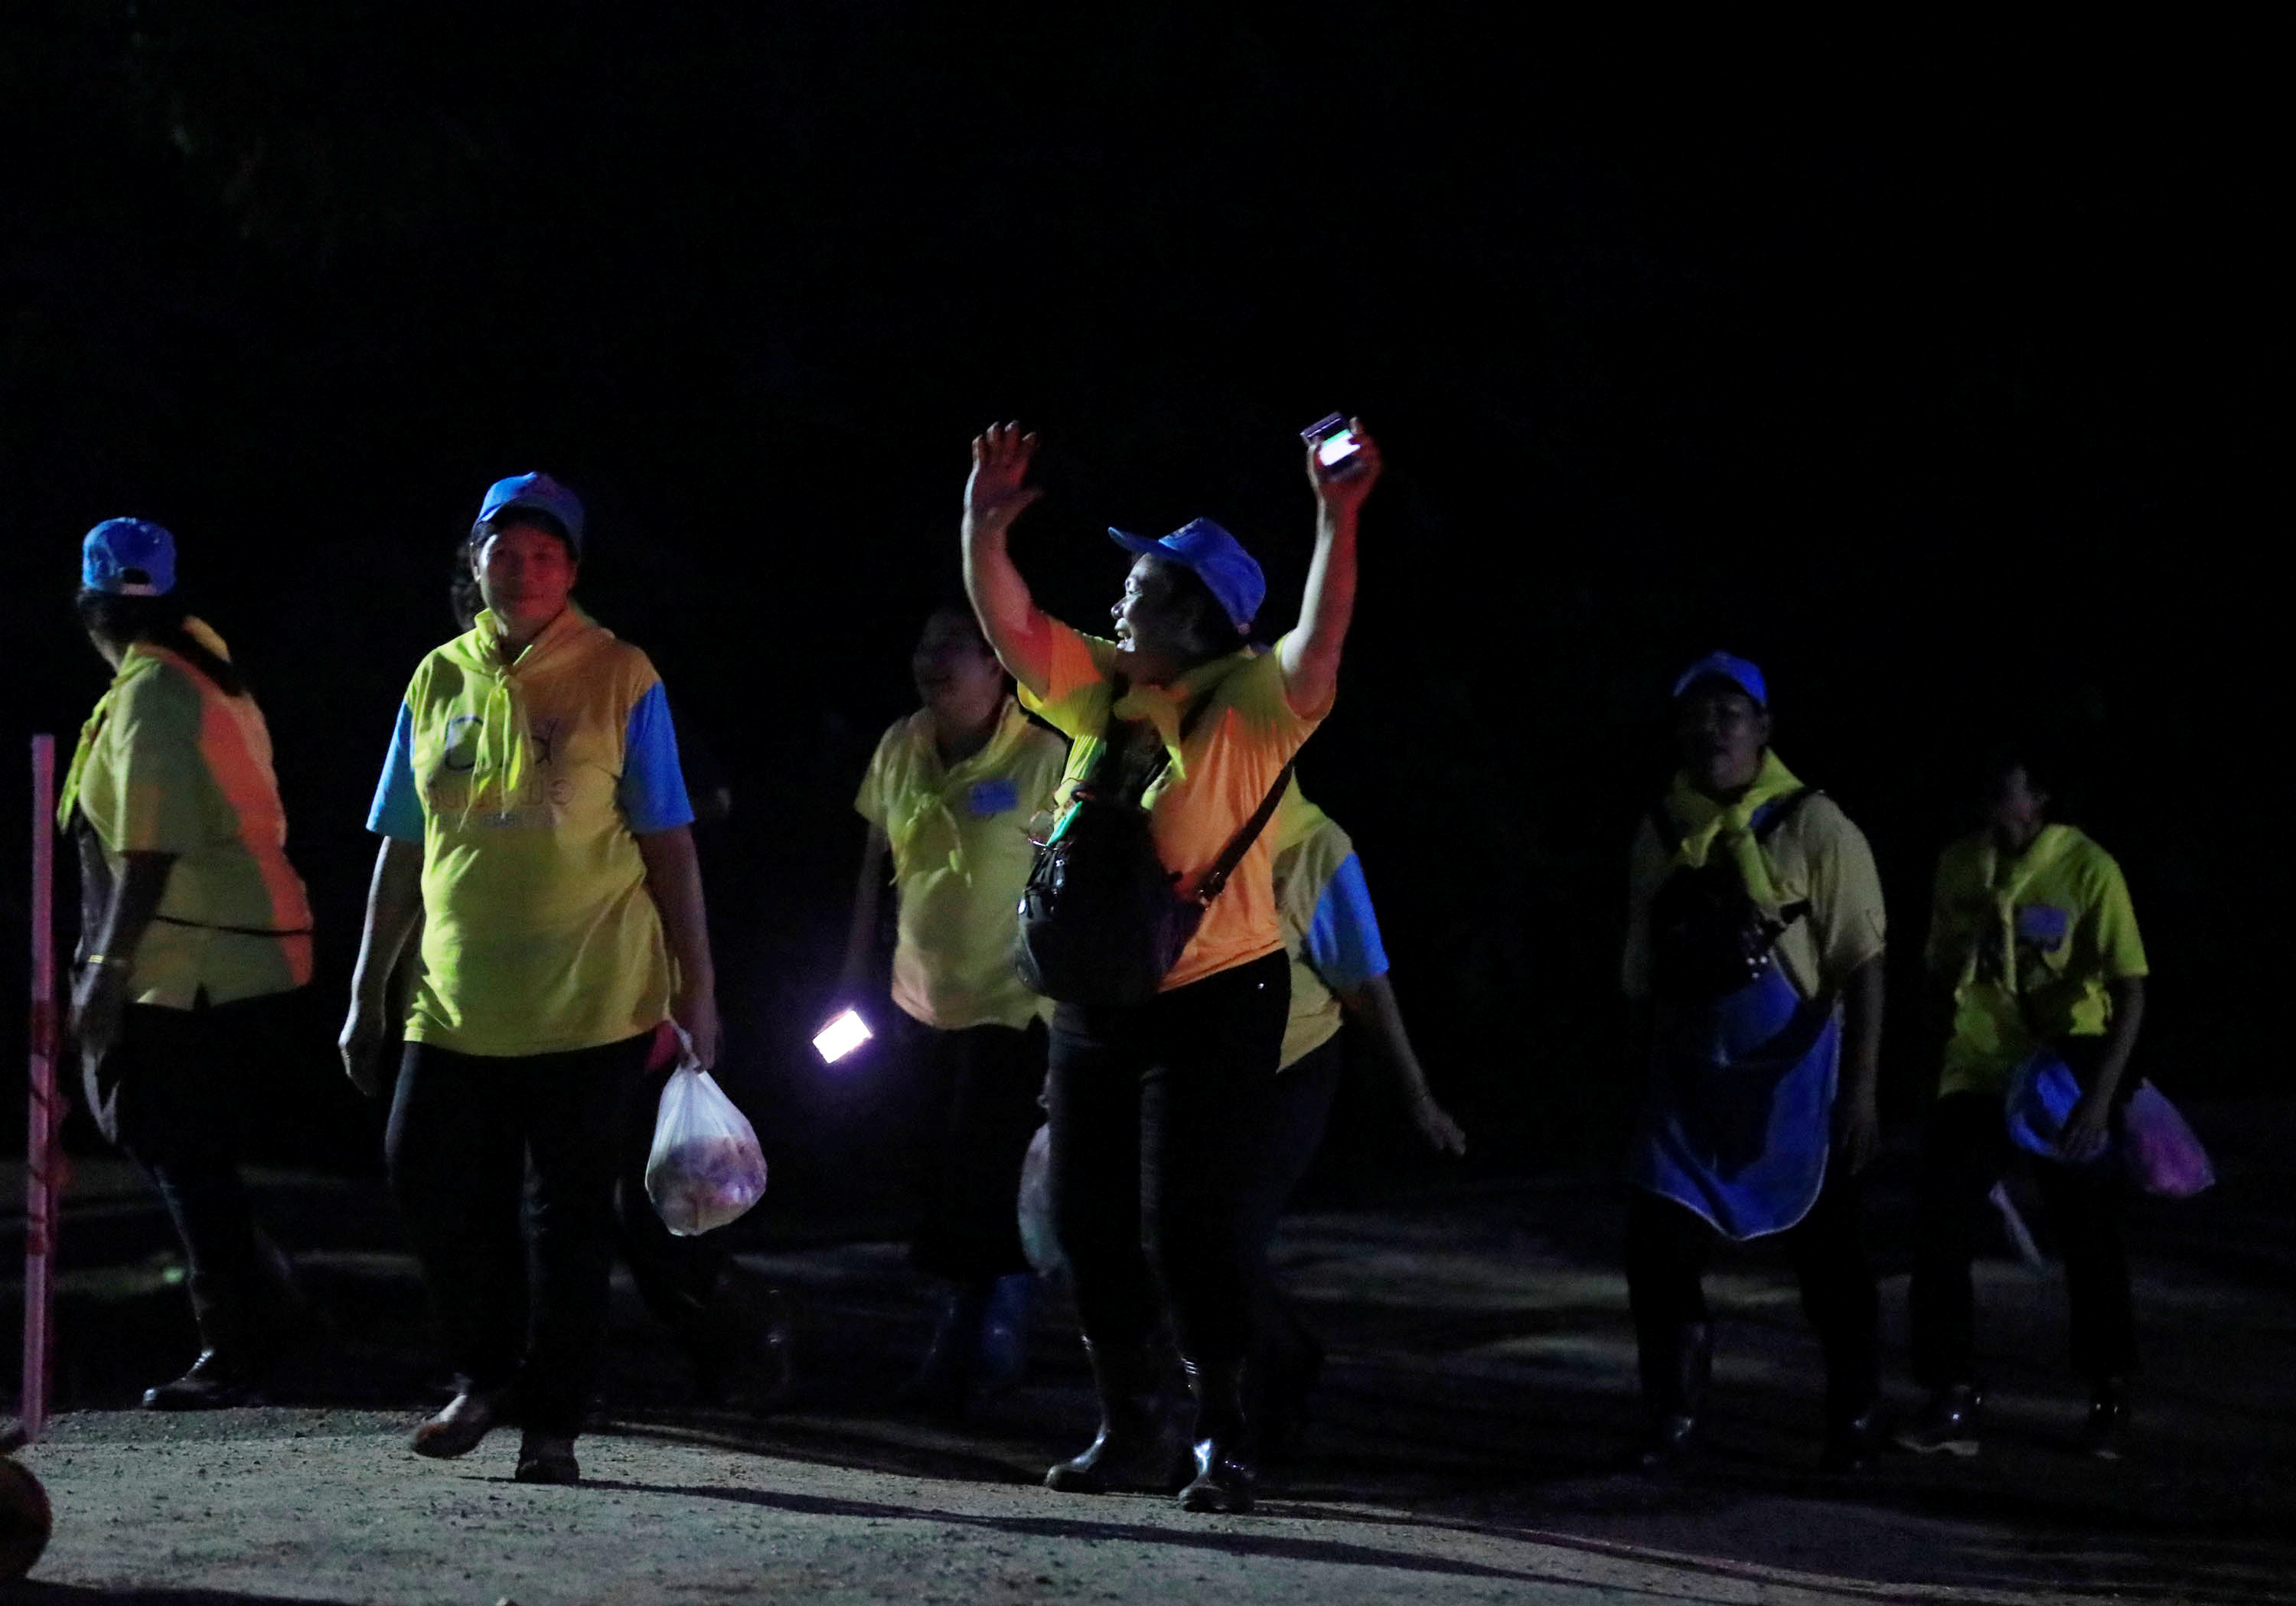 Volunteers celebrate near Tham Luang cave complex in the northern province of Chiang Rai